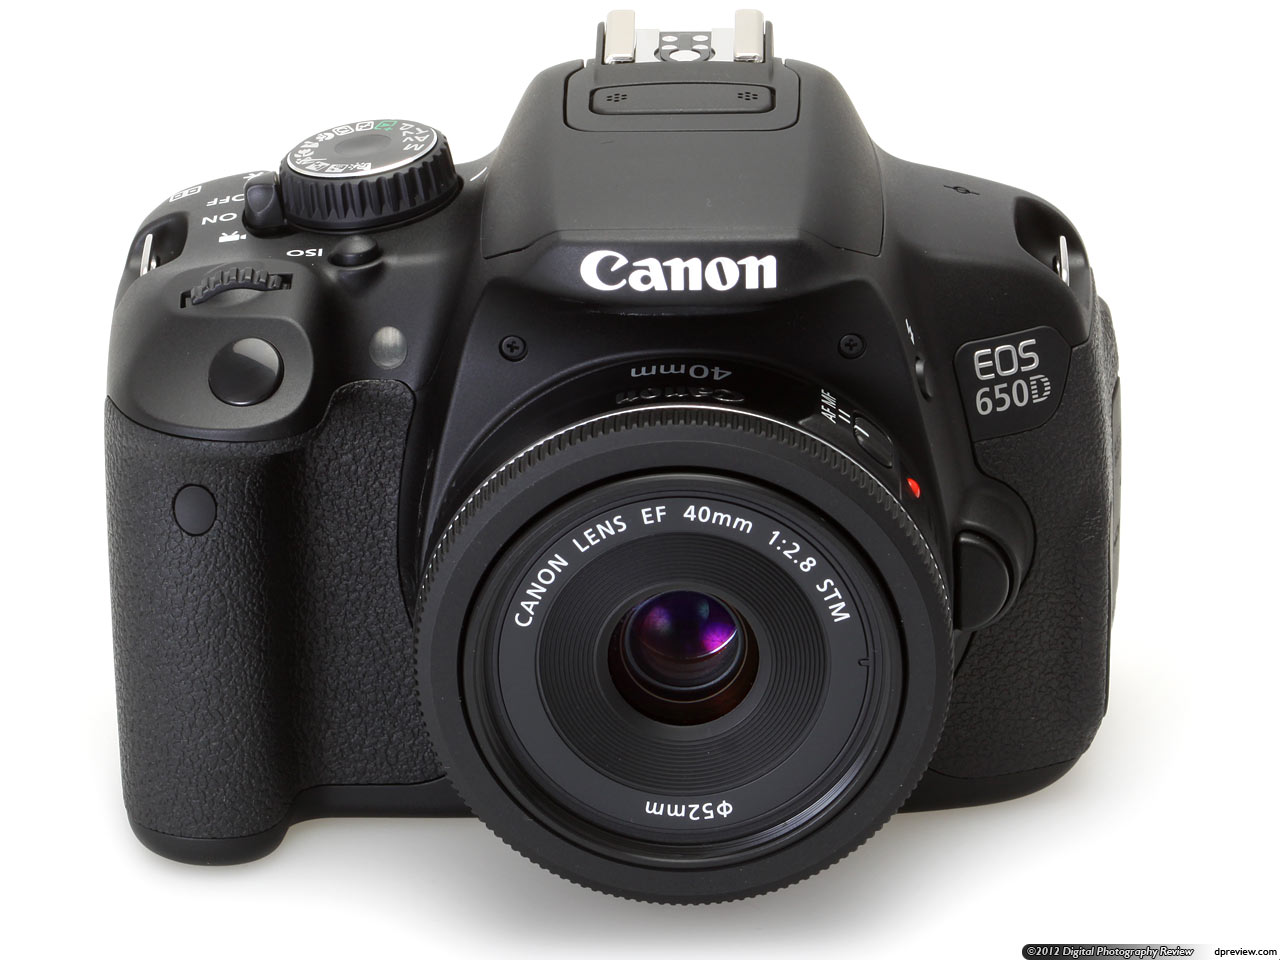 Canon EOS 650D/Rebel T4i In-Depth Review: Digital ...